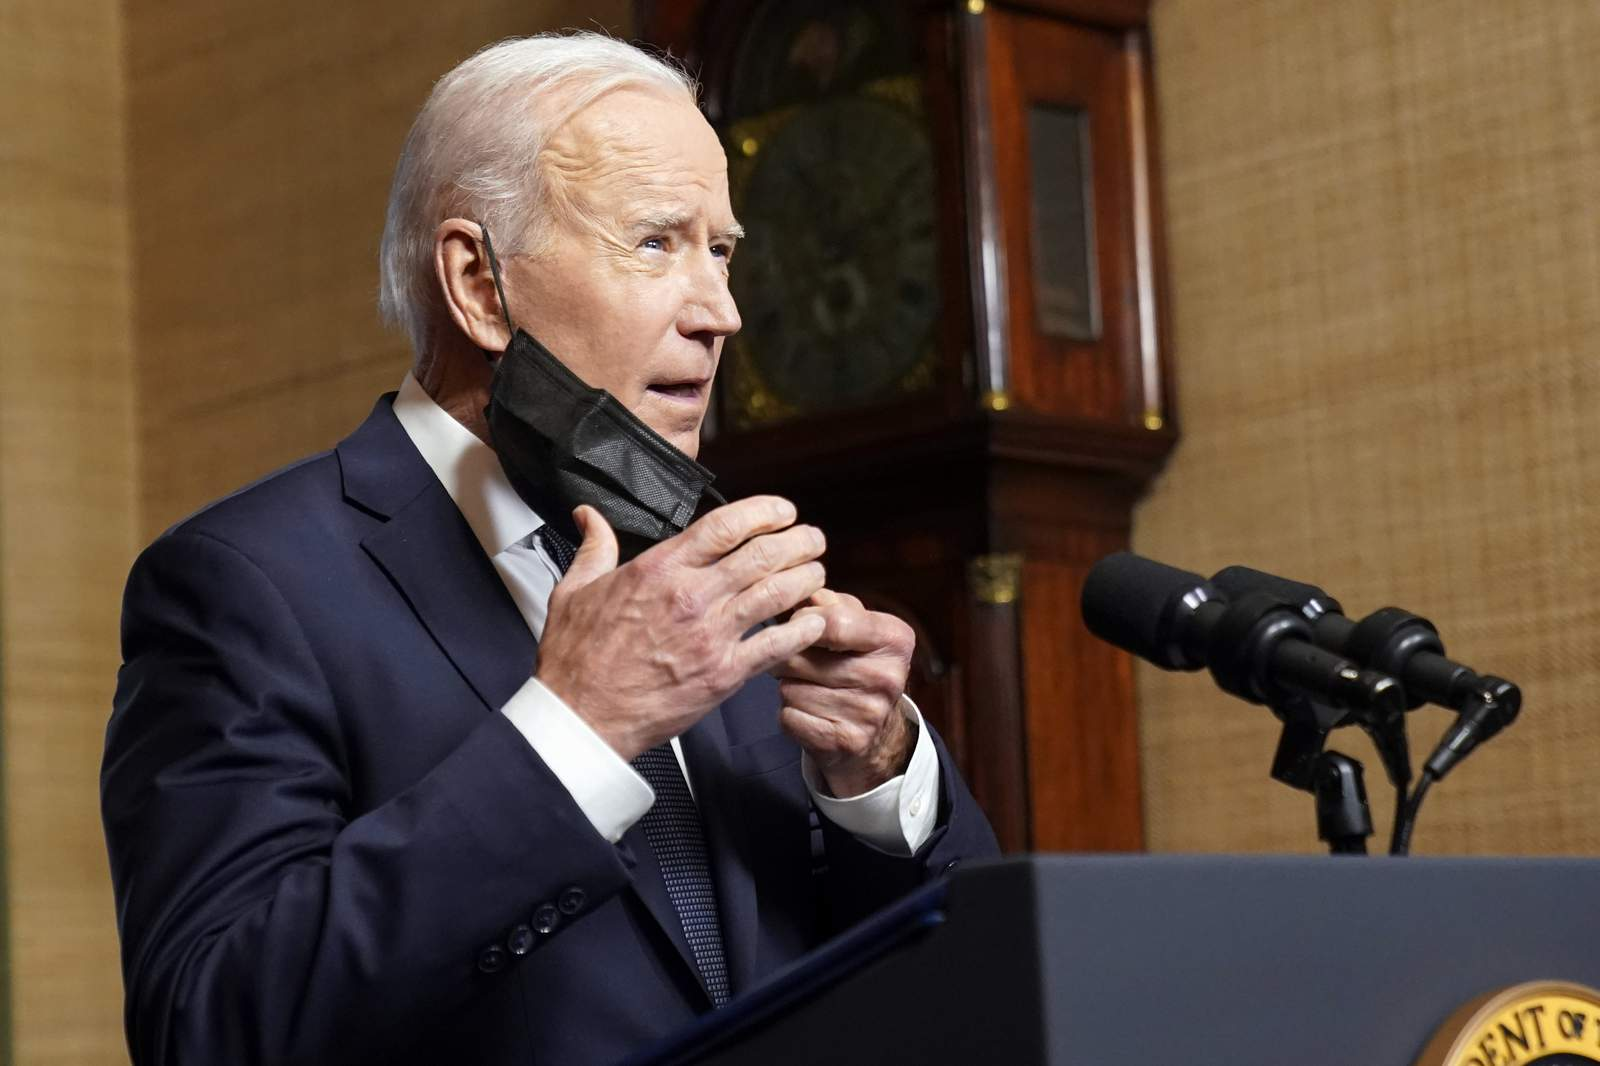 President Joe Biden takes off his face mask as he begins to speak from the Treaty Room in the White House on Wednesday, April 14, 2021, about the withdrawal of the remainder of U.S. troops from Afghanistan. (AP Photo/Andrew Harnik, Pool)